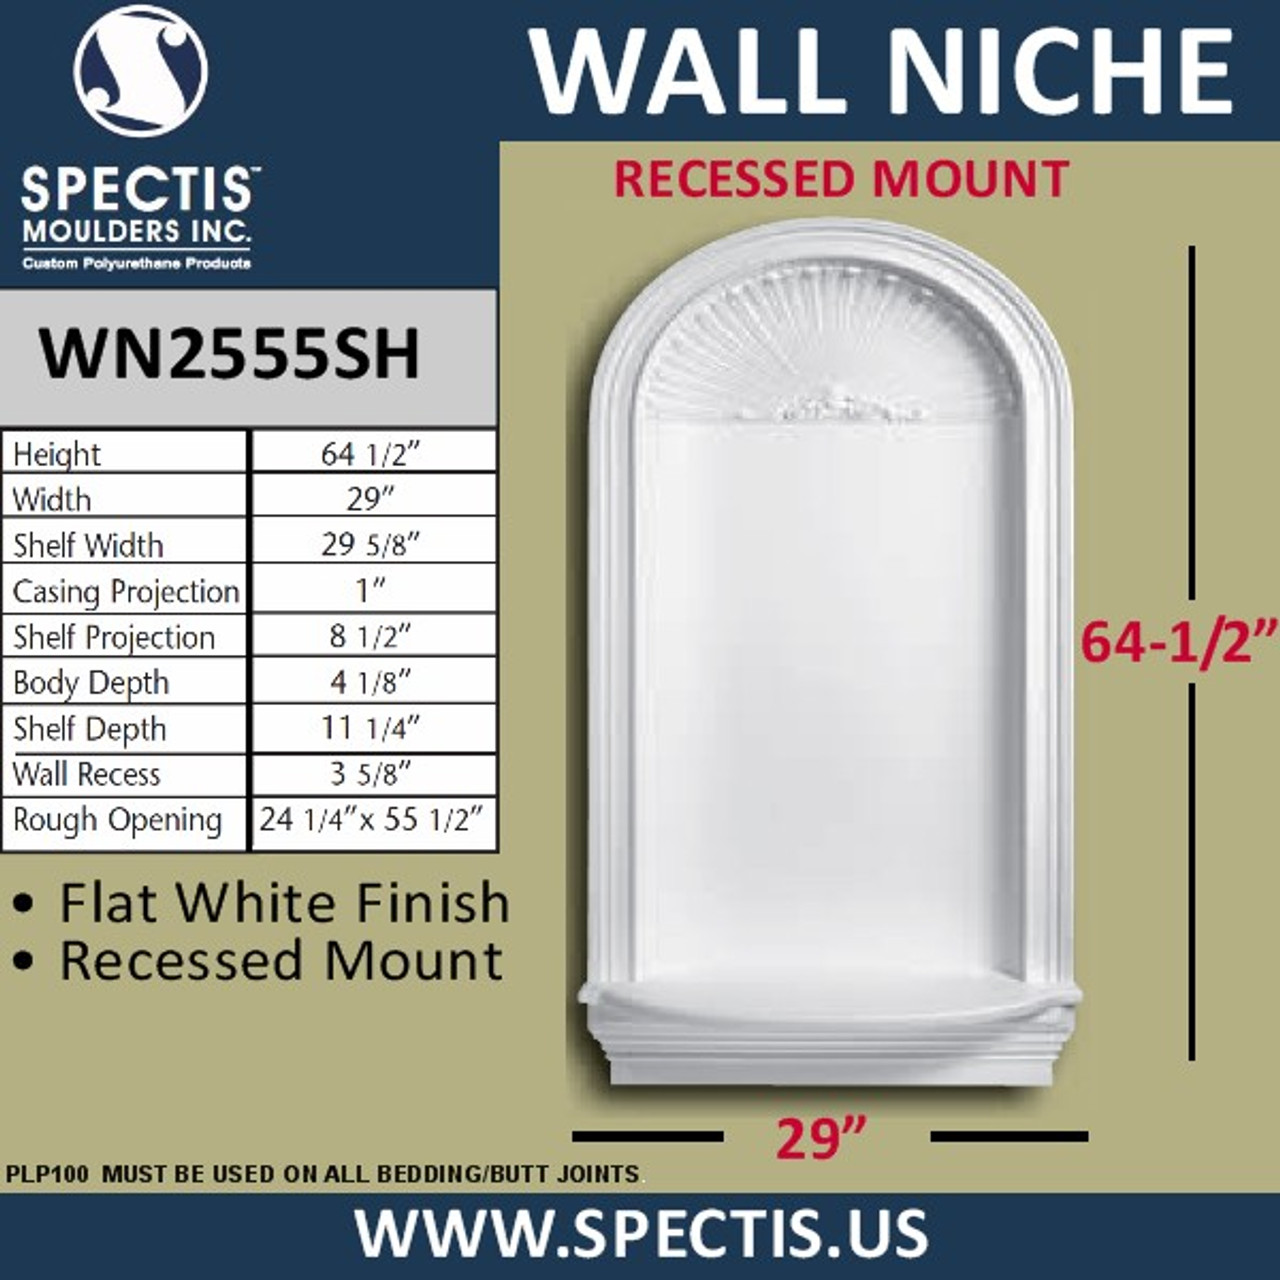 "WN2555SH In-Wall Niche Flat White Finish with Shell Top 29"" x 64 1/2"""